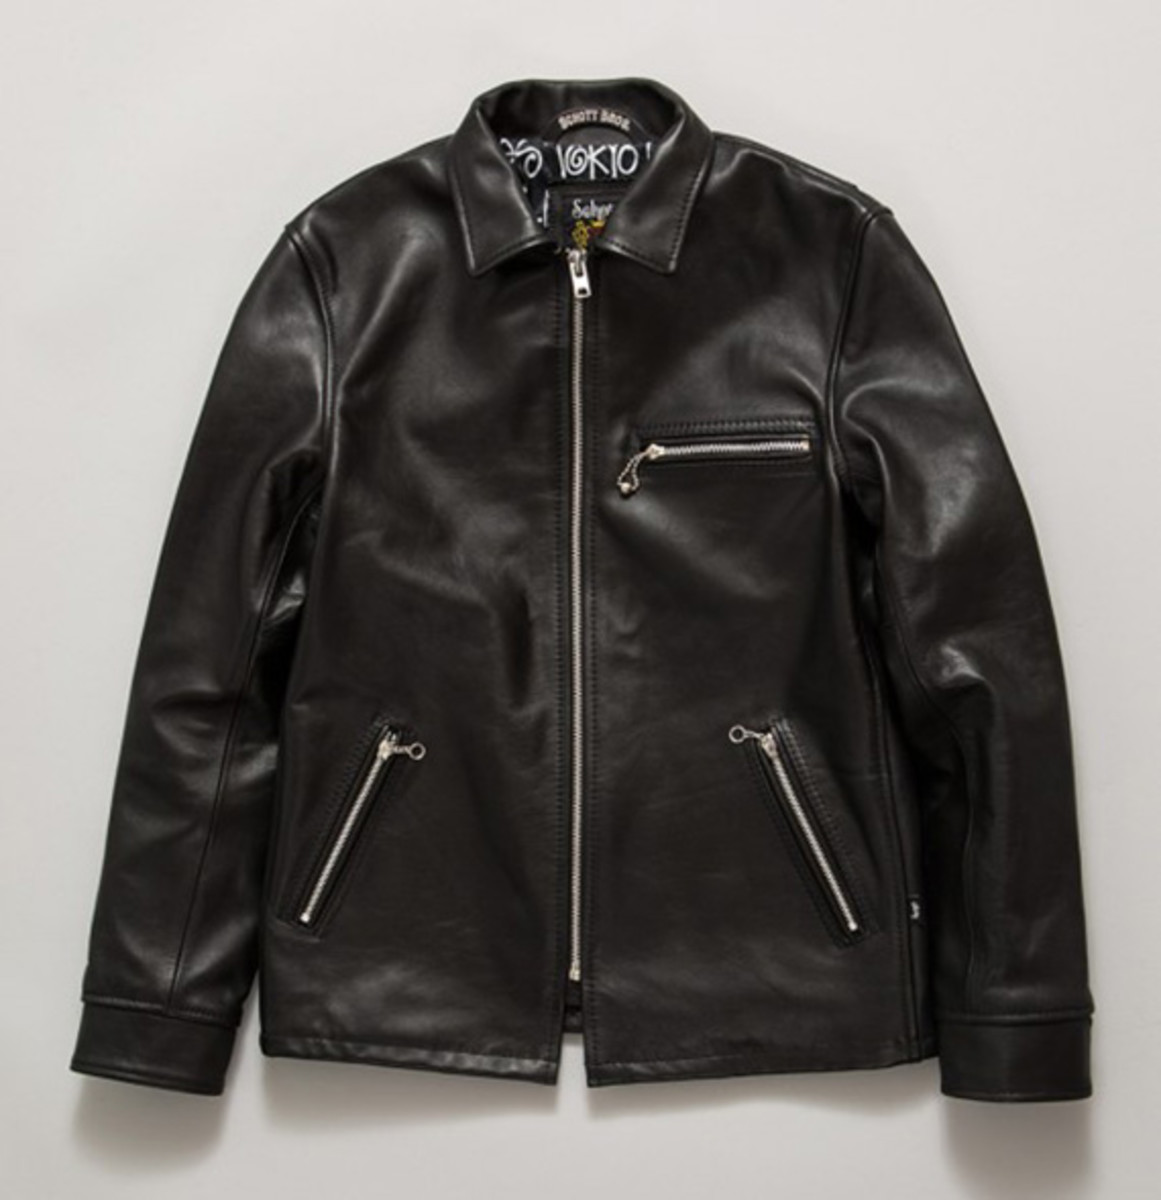 Leather jacket stores nyc